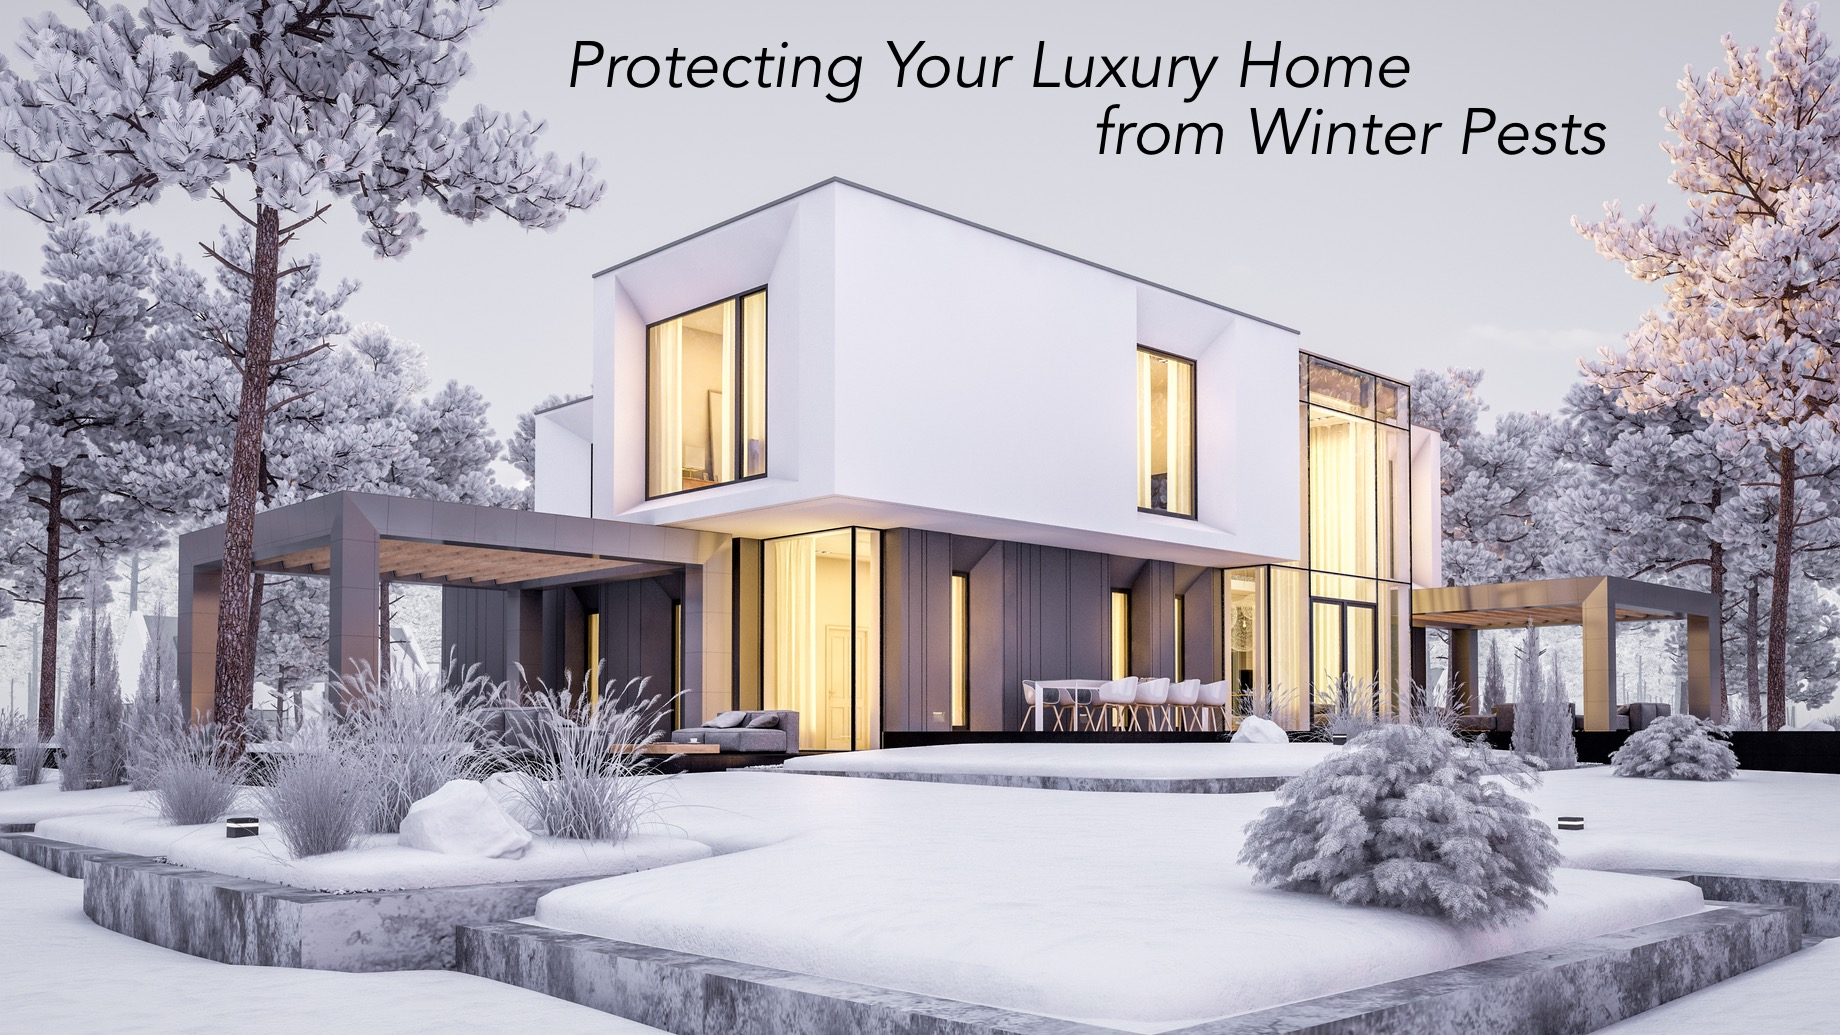 Protecting Your Luxury Home from Winter Pests